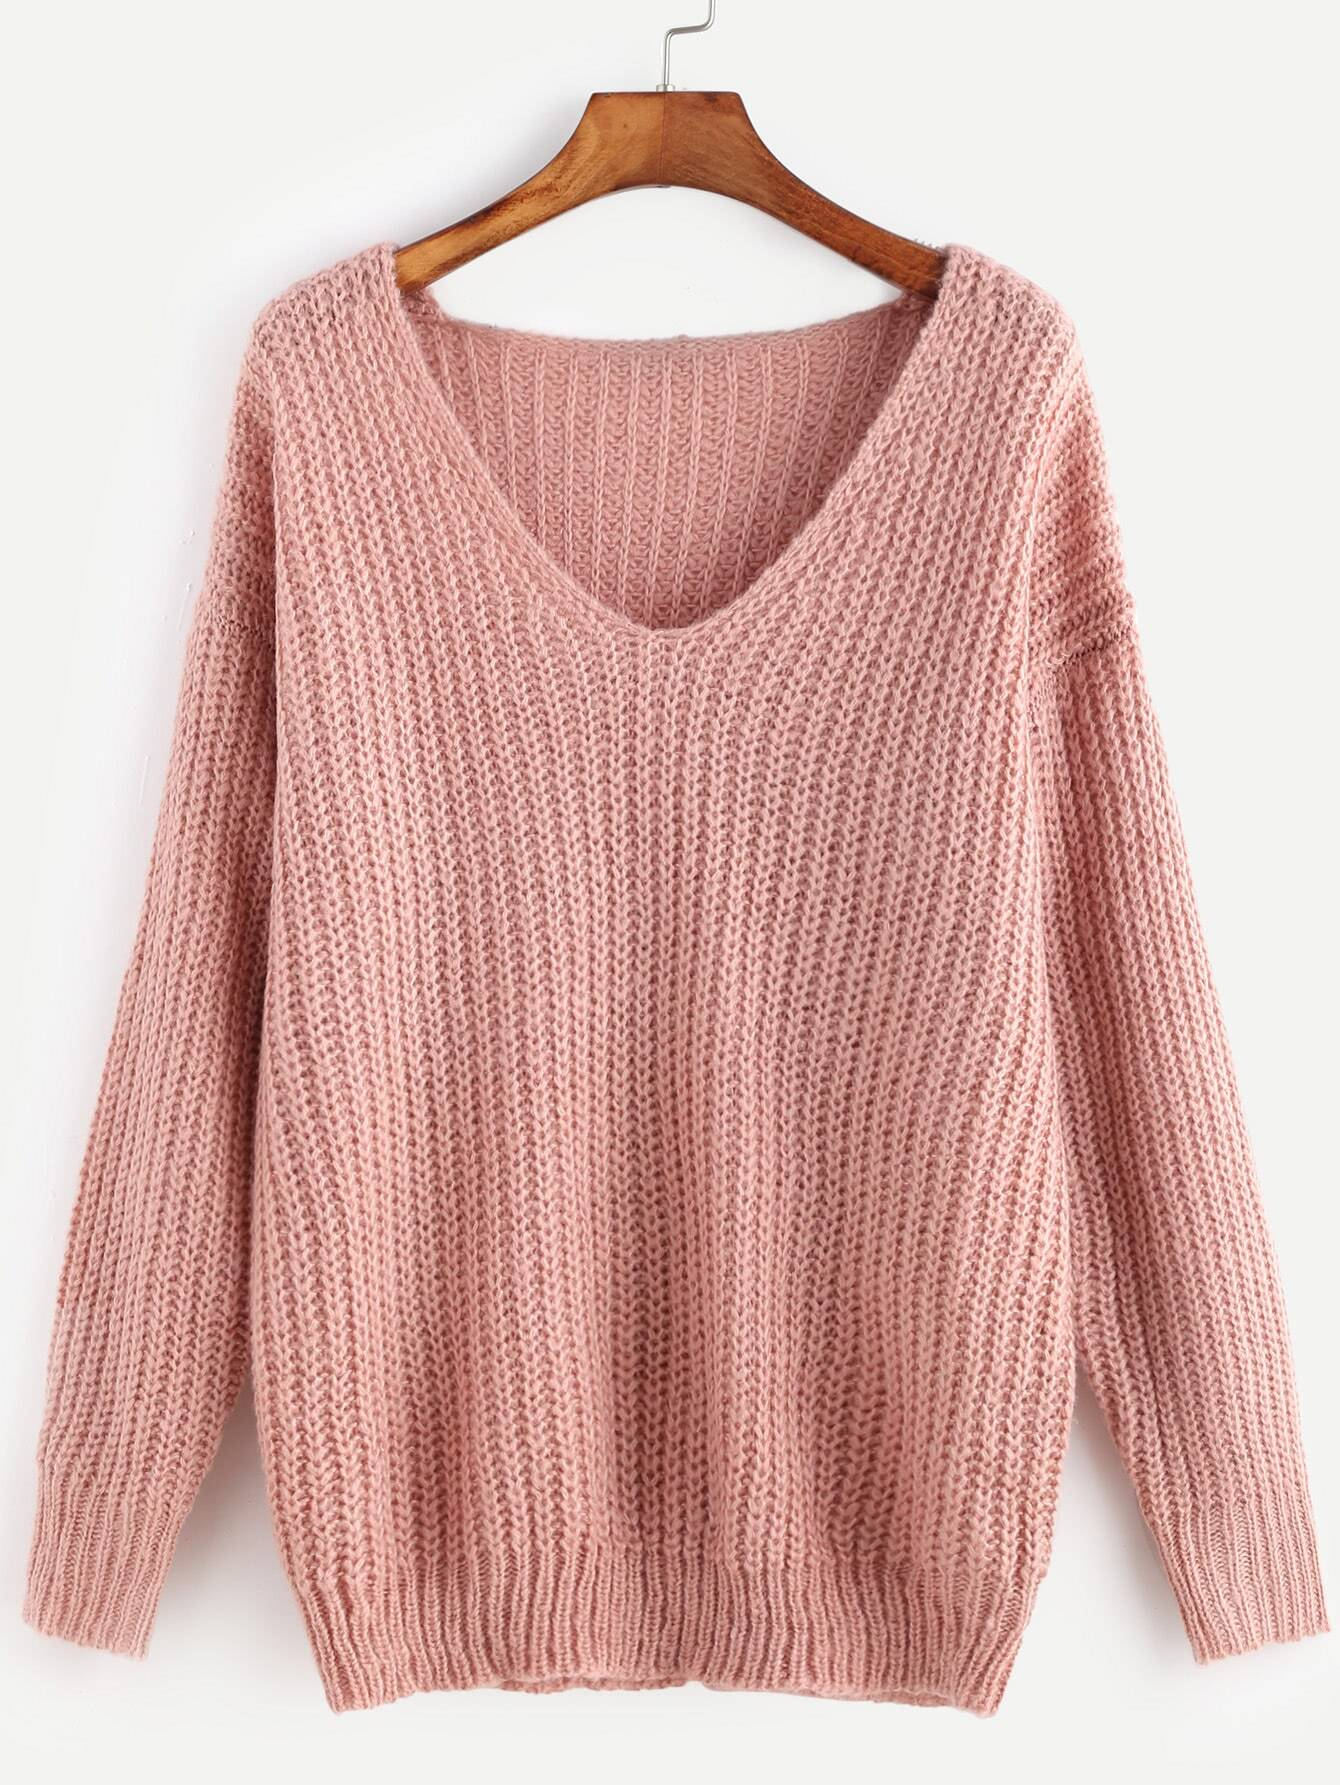 Pink Ribbed Knit V Neck Drop Shoulder Sweater dark grey ribbed trim drop shoulder lace up sweatshirt